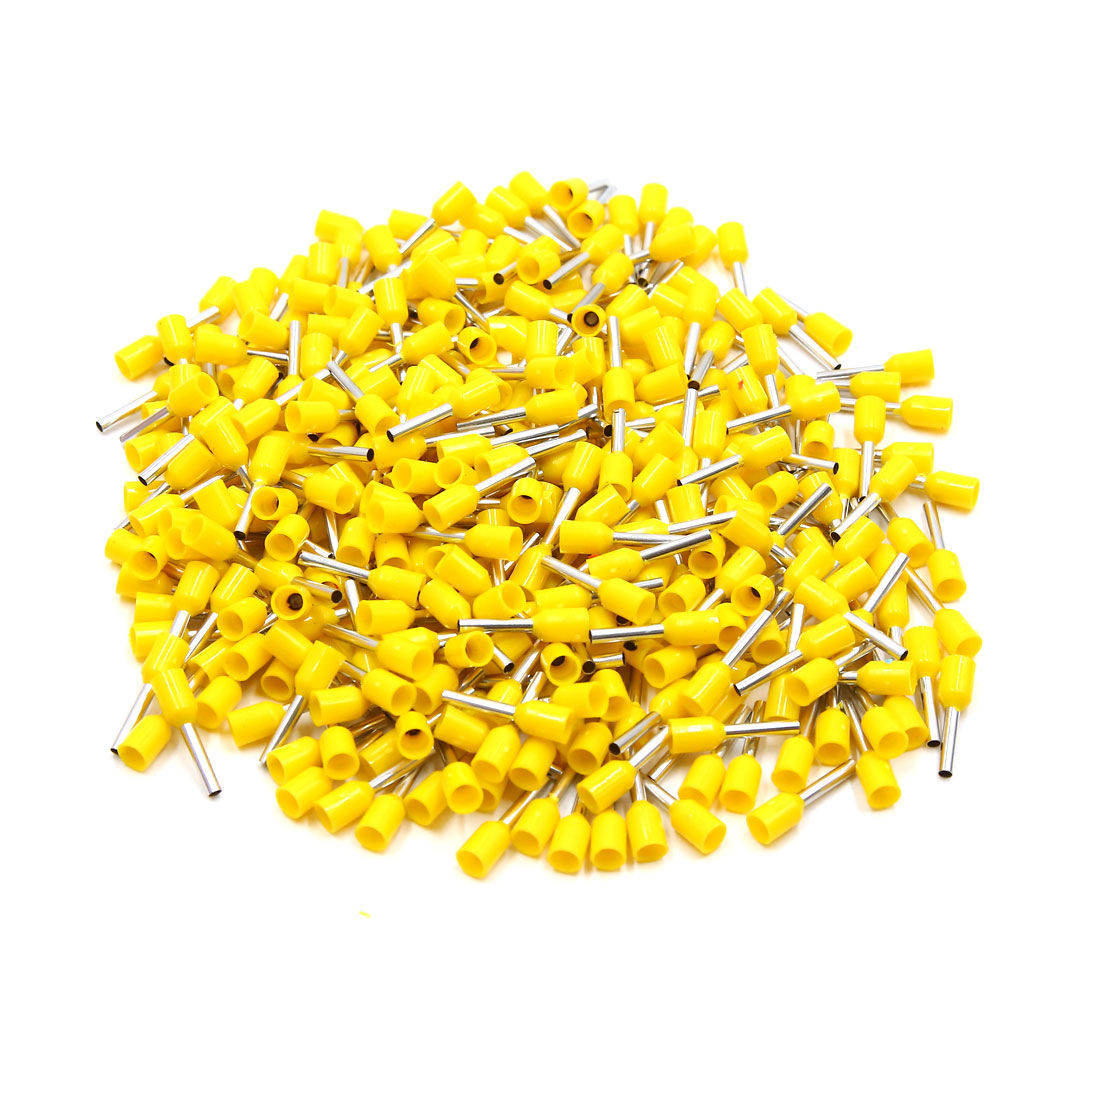 360pcs Yellow Insulated Copper AWG 16 Wire Crimp Connector Cord Pin End Terminal